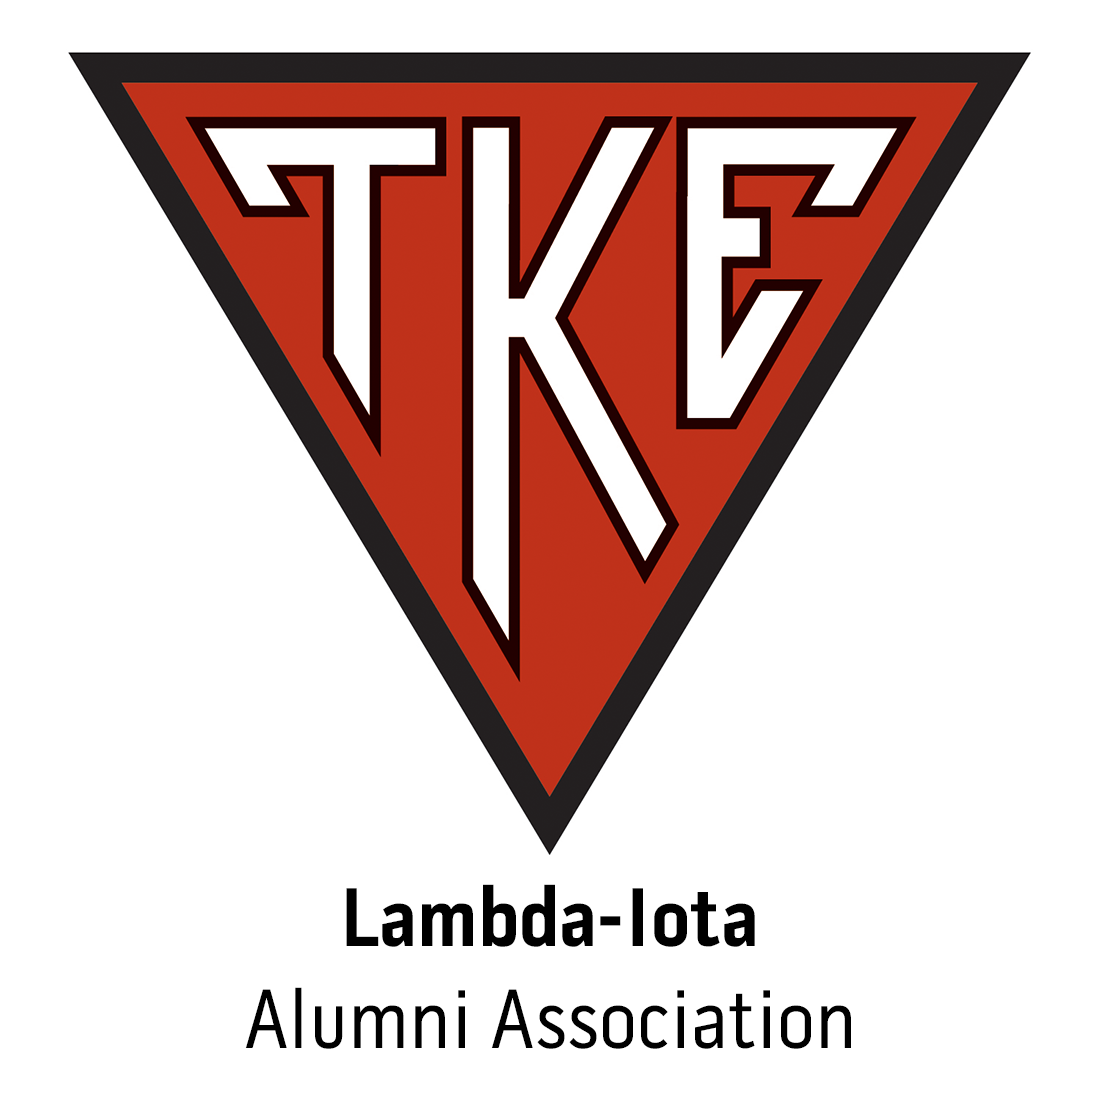 Lambda-Iota Alumni Association at Florida State University